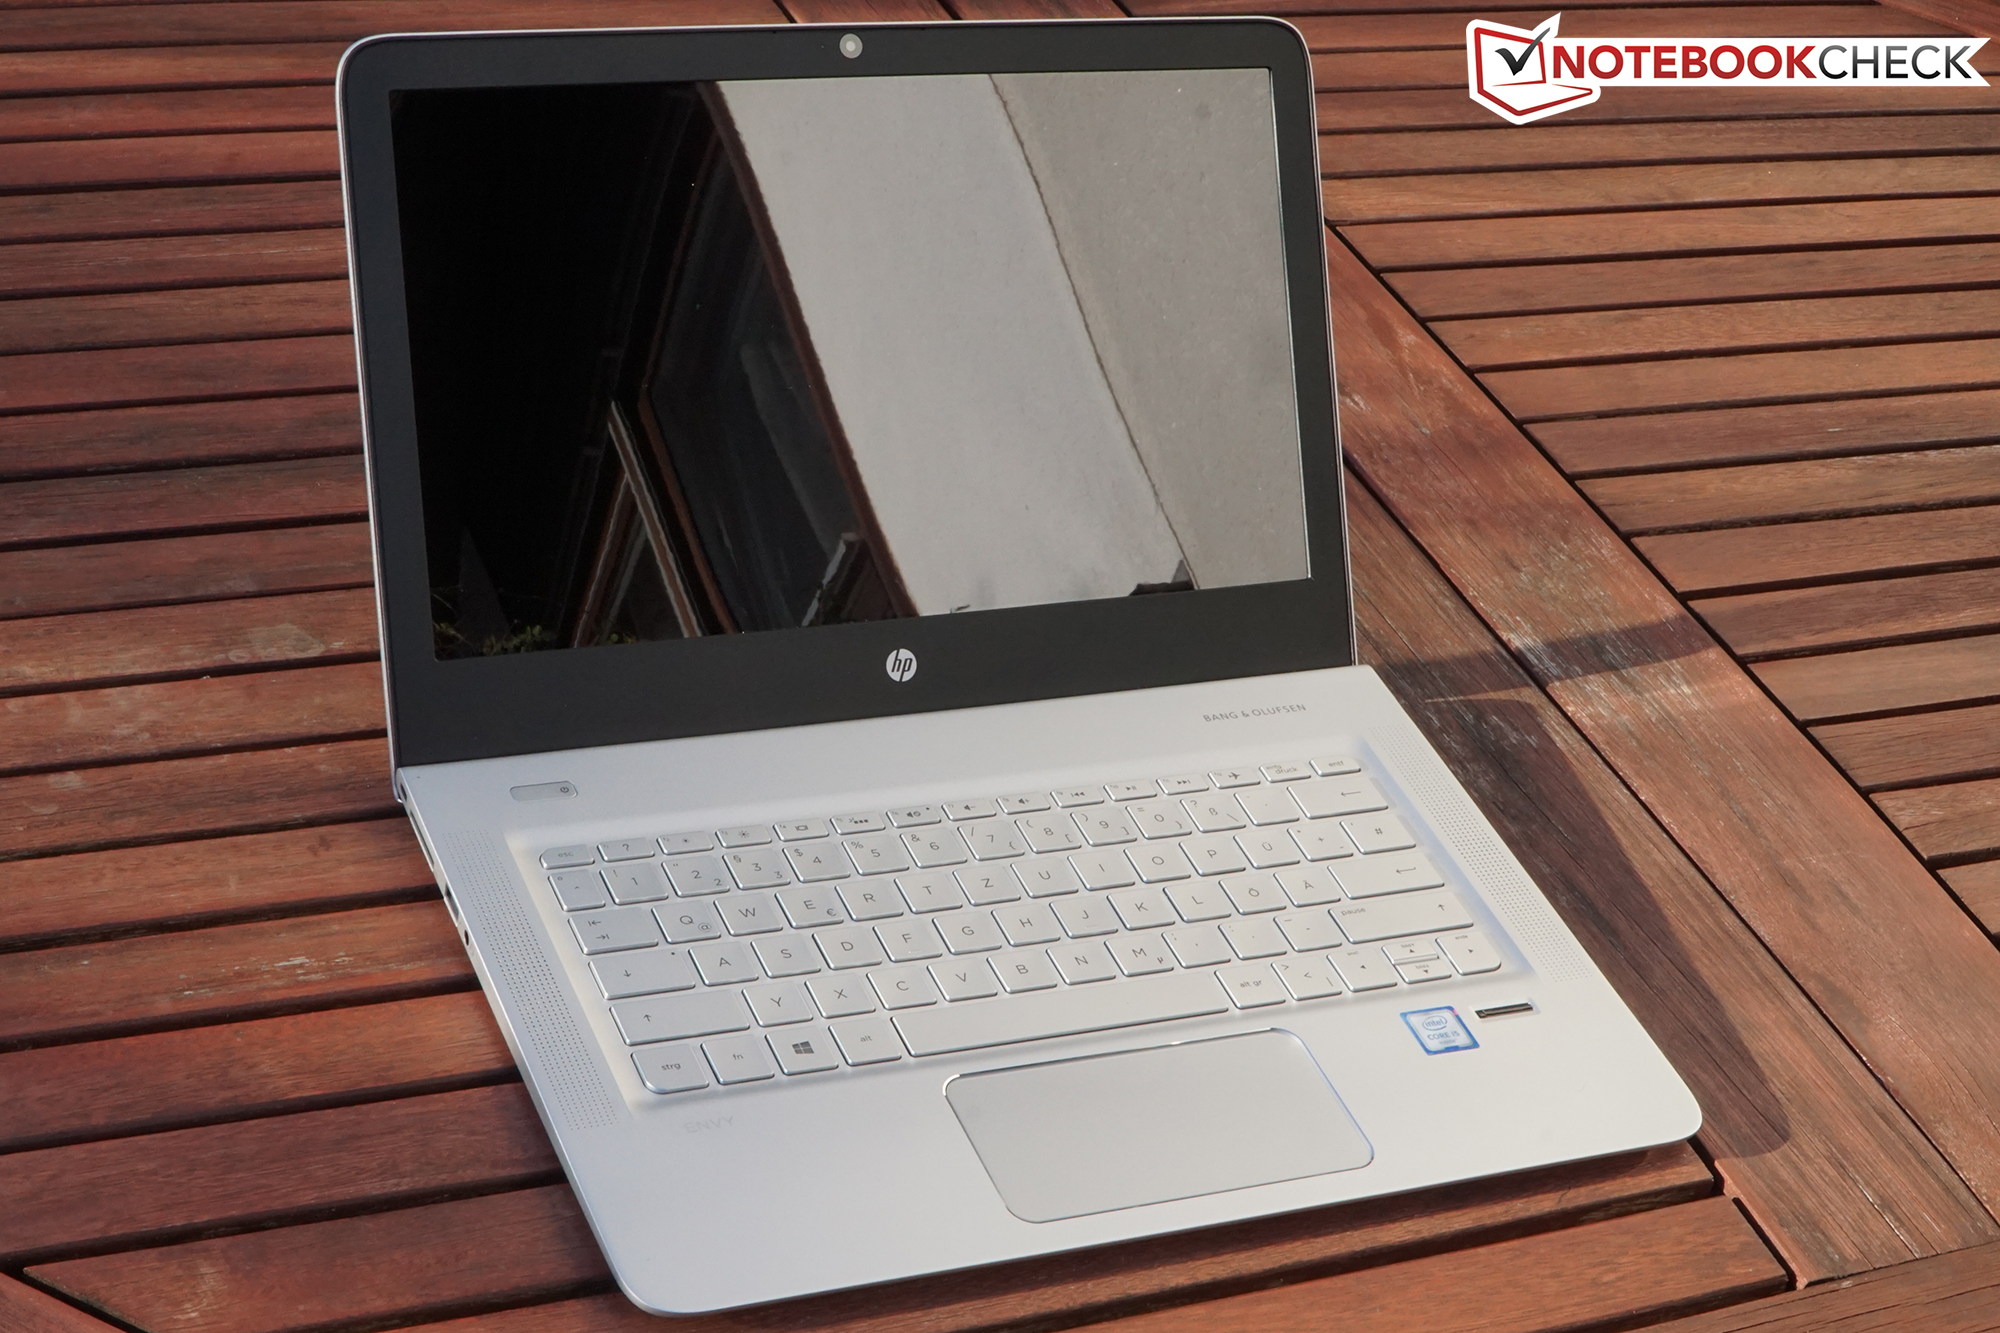 HP Envy 13-d000ng Notebook Review - NotebookCheck net Reviews